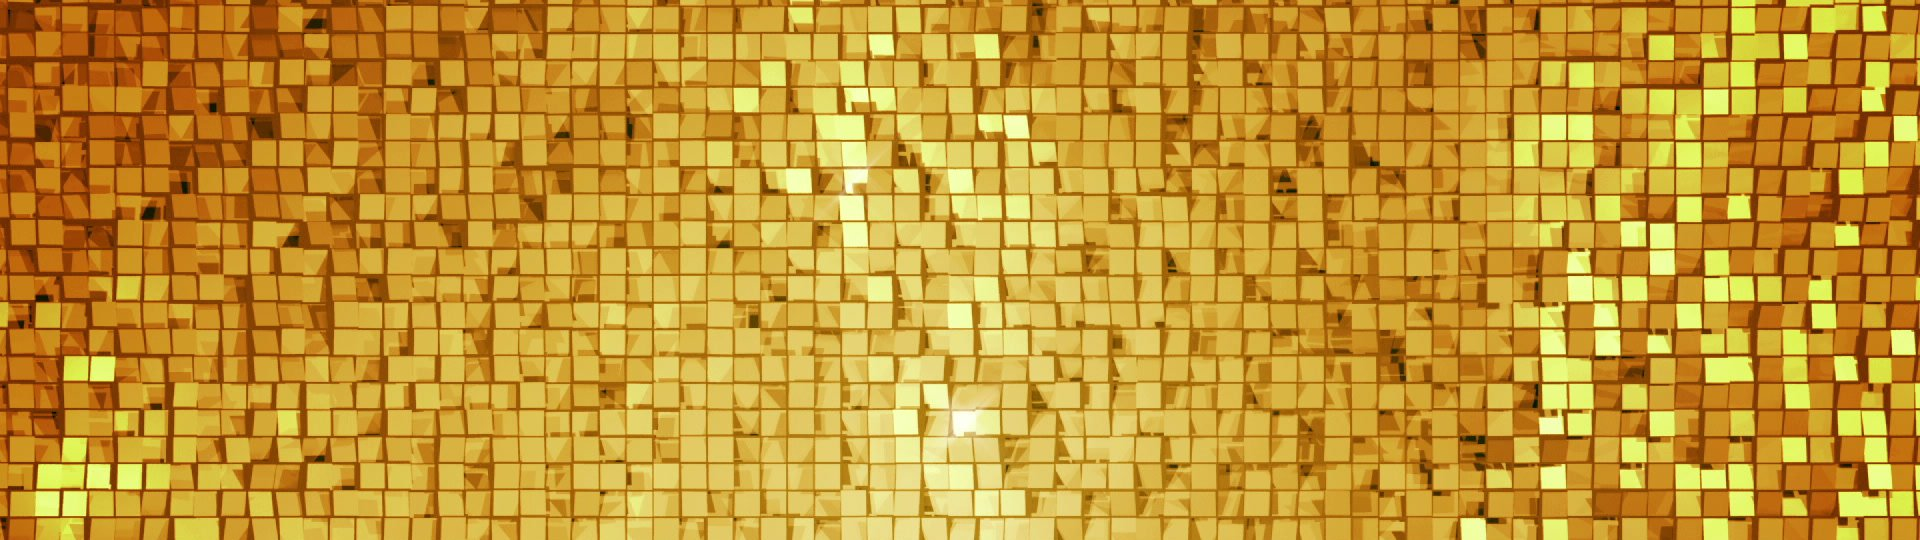 Golden square blocks background animation. Seamless loop. | Golden square blocks background animation. Seamless loop. - ID:18303